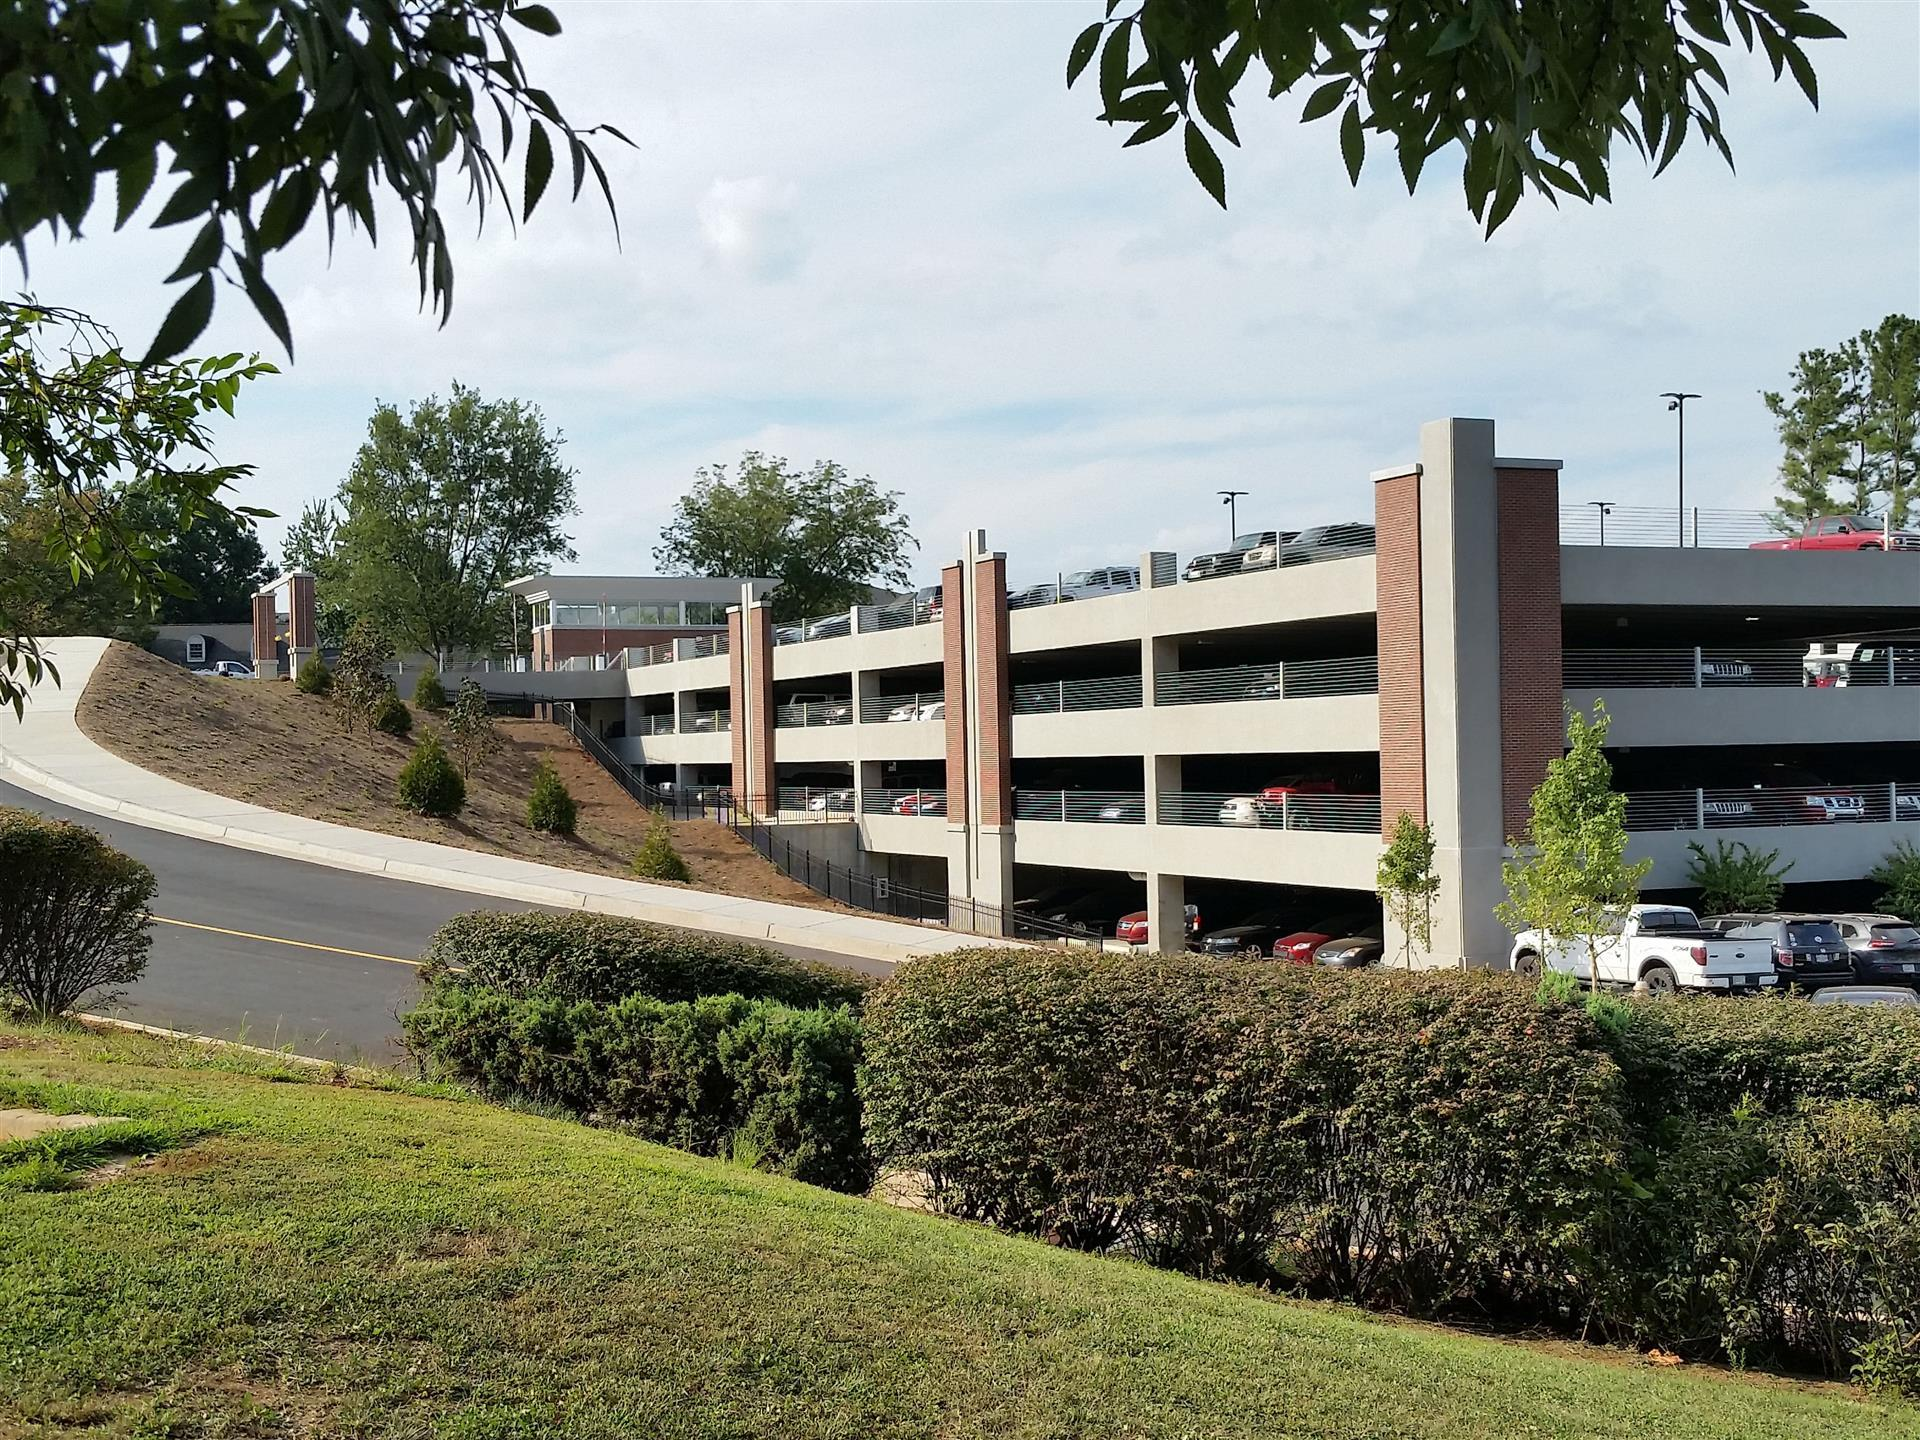 parking garage on hill with brick accents and lots of shrubbery